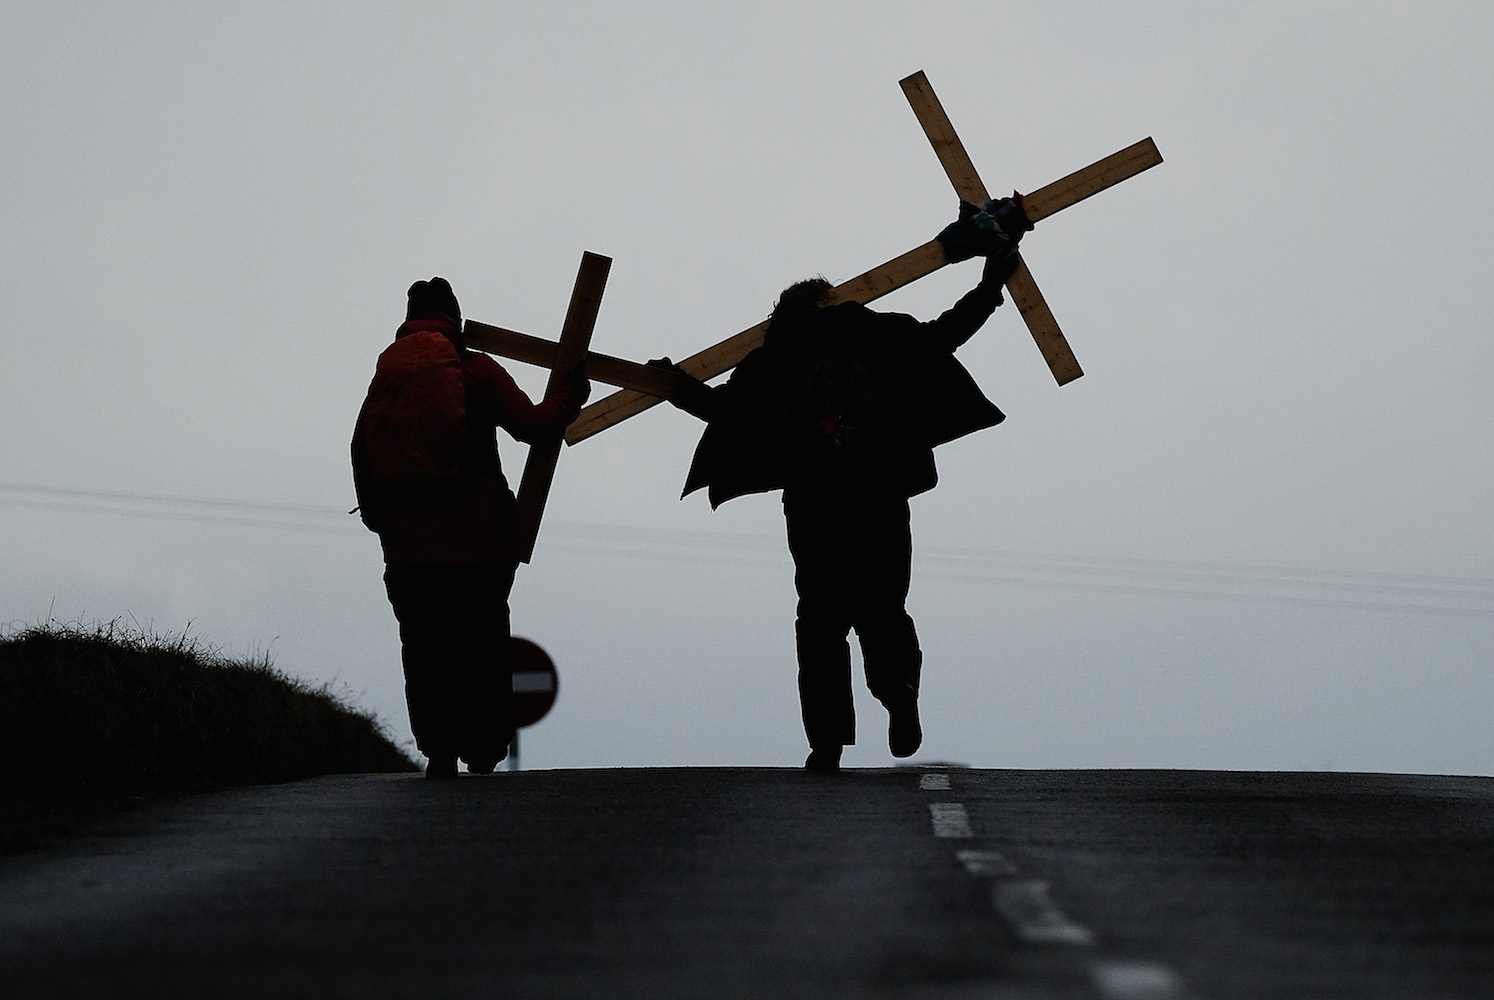 Pilgrims celebrate Easter by crossing over the tidal causeway carrying wooden crosses on the final leg of their annual pilgrimage to the Holy Island of Lindisfarne on March 30, 2018 in Berwick-upon-Tweed, England. Around 100 people of all ages and backgrounds celebrated Easter by crossing at low tide during the pilgrimage which ends on the island. The event is organised by Northern Cross and sees pilgrims walking between 70 to 120 miles in the week leading up to the Good Friday crossing. (Photo by Ian Forsyth/Getty Images)